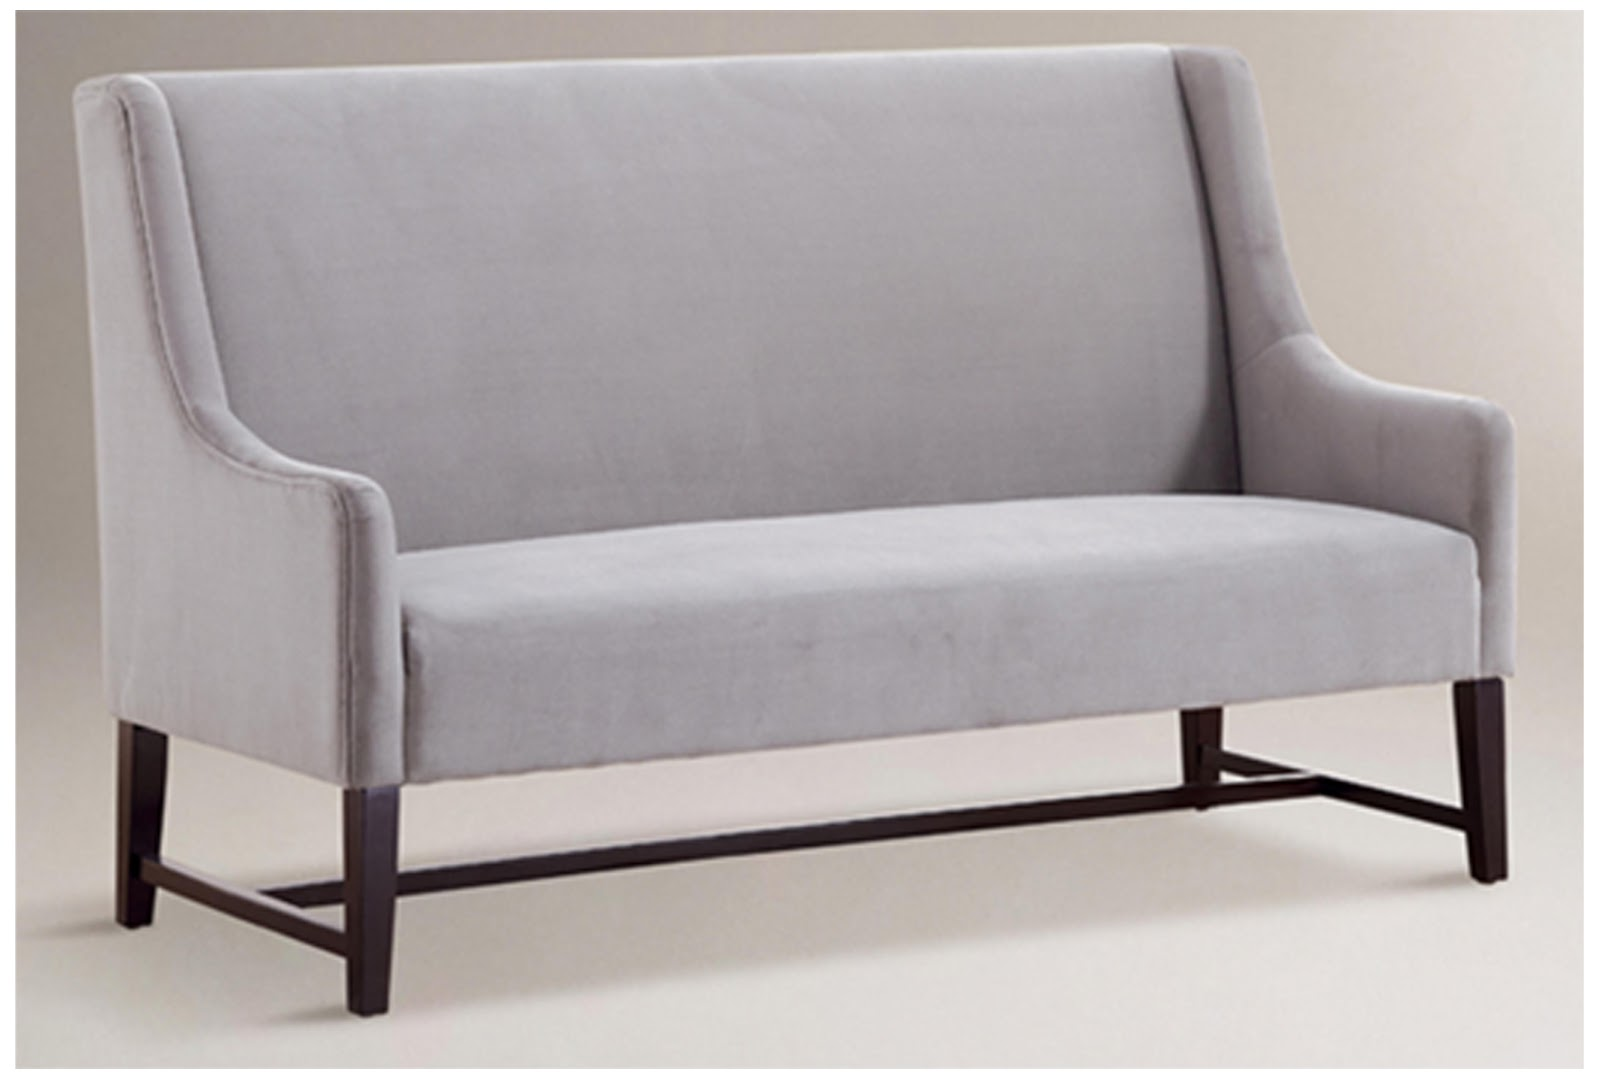 Concrete Hayden Dining Banquette We Own This And Love It In Fact I M Sitting On As Write